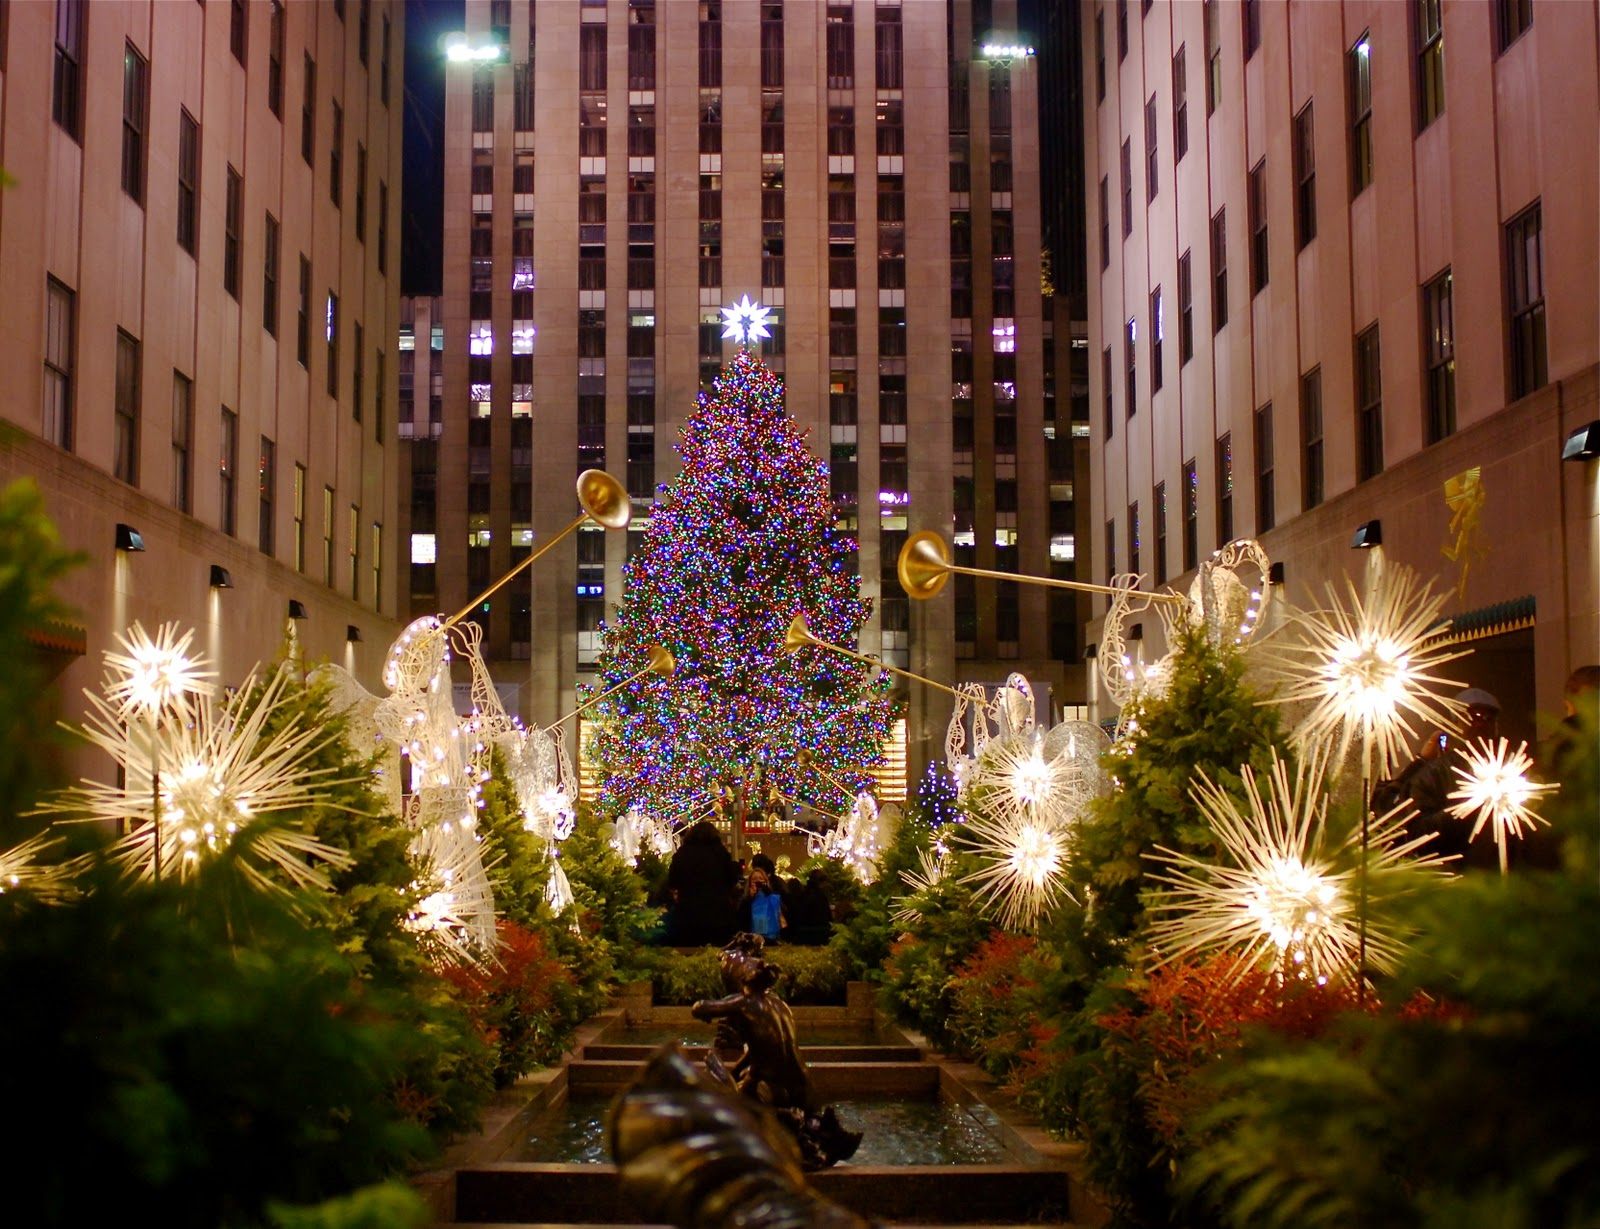 NYC ♥ NYC: Christmas Trees in Manhattan